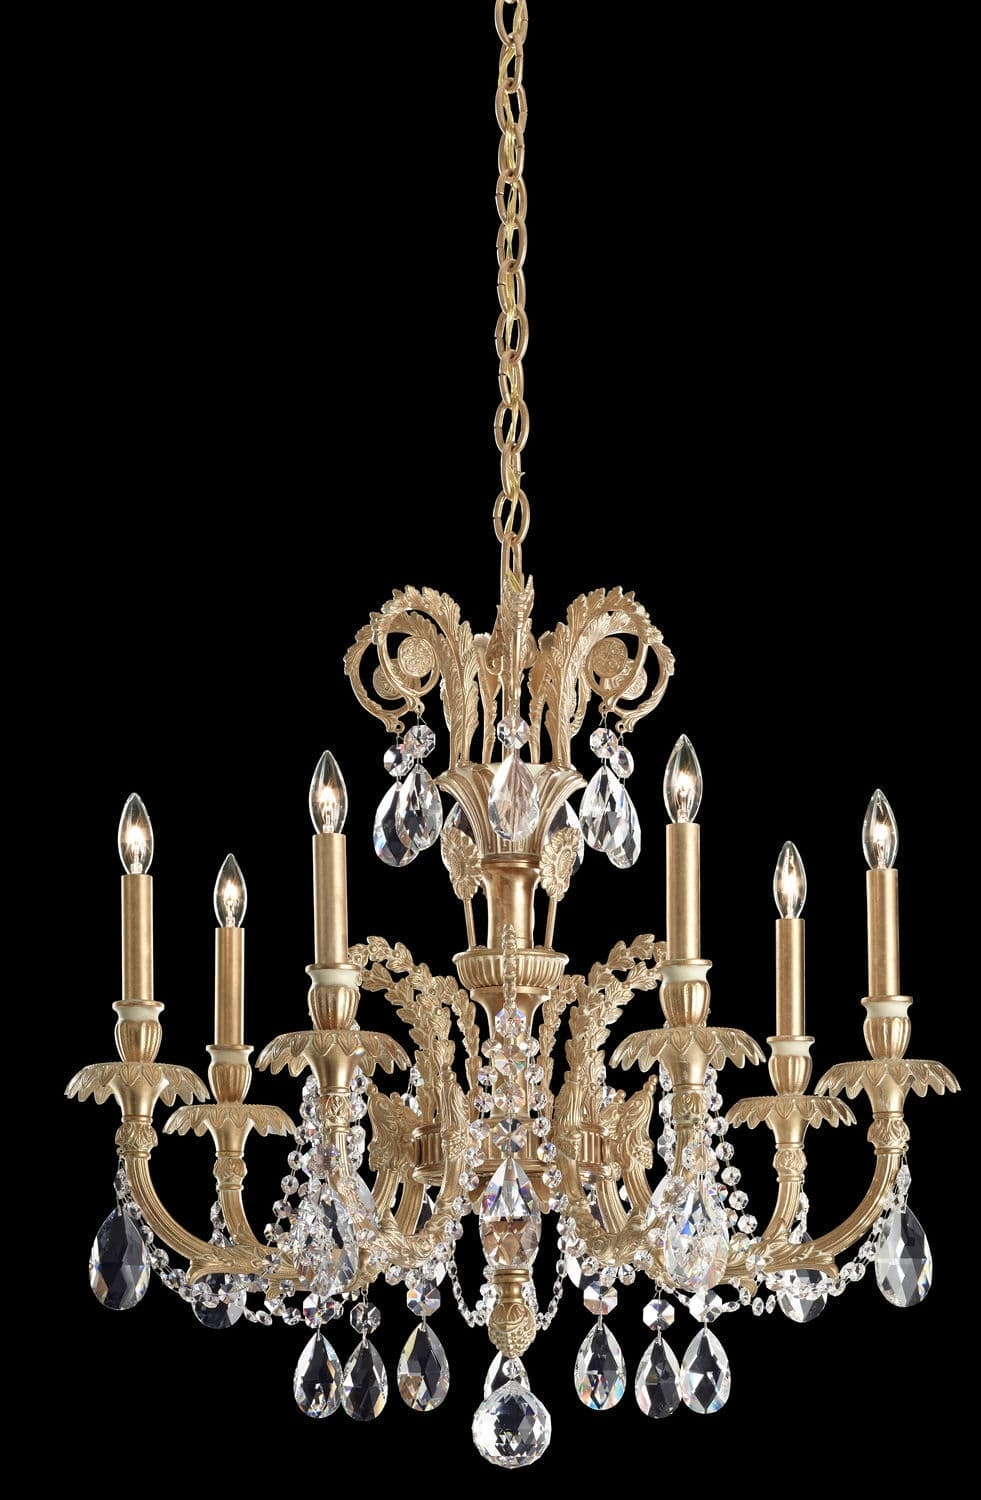 Traditional Chandelier Crystal Cast Iron Led Genzano Inside Traditional Chandelier (Image 10 of 15)